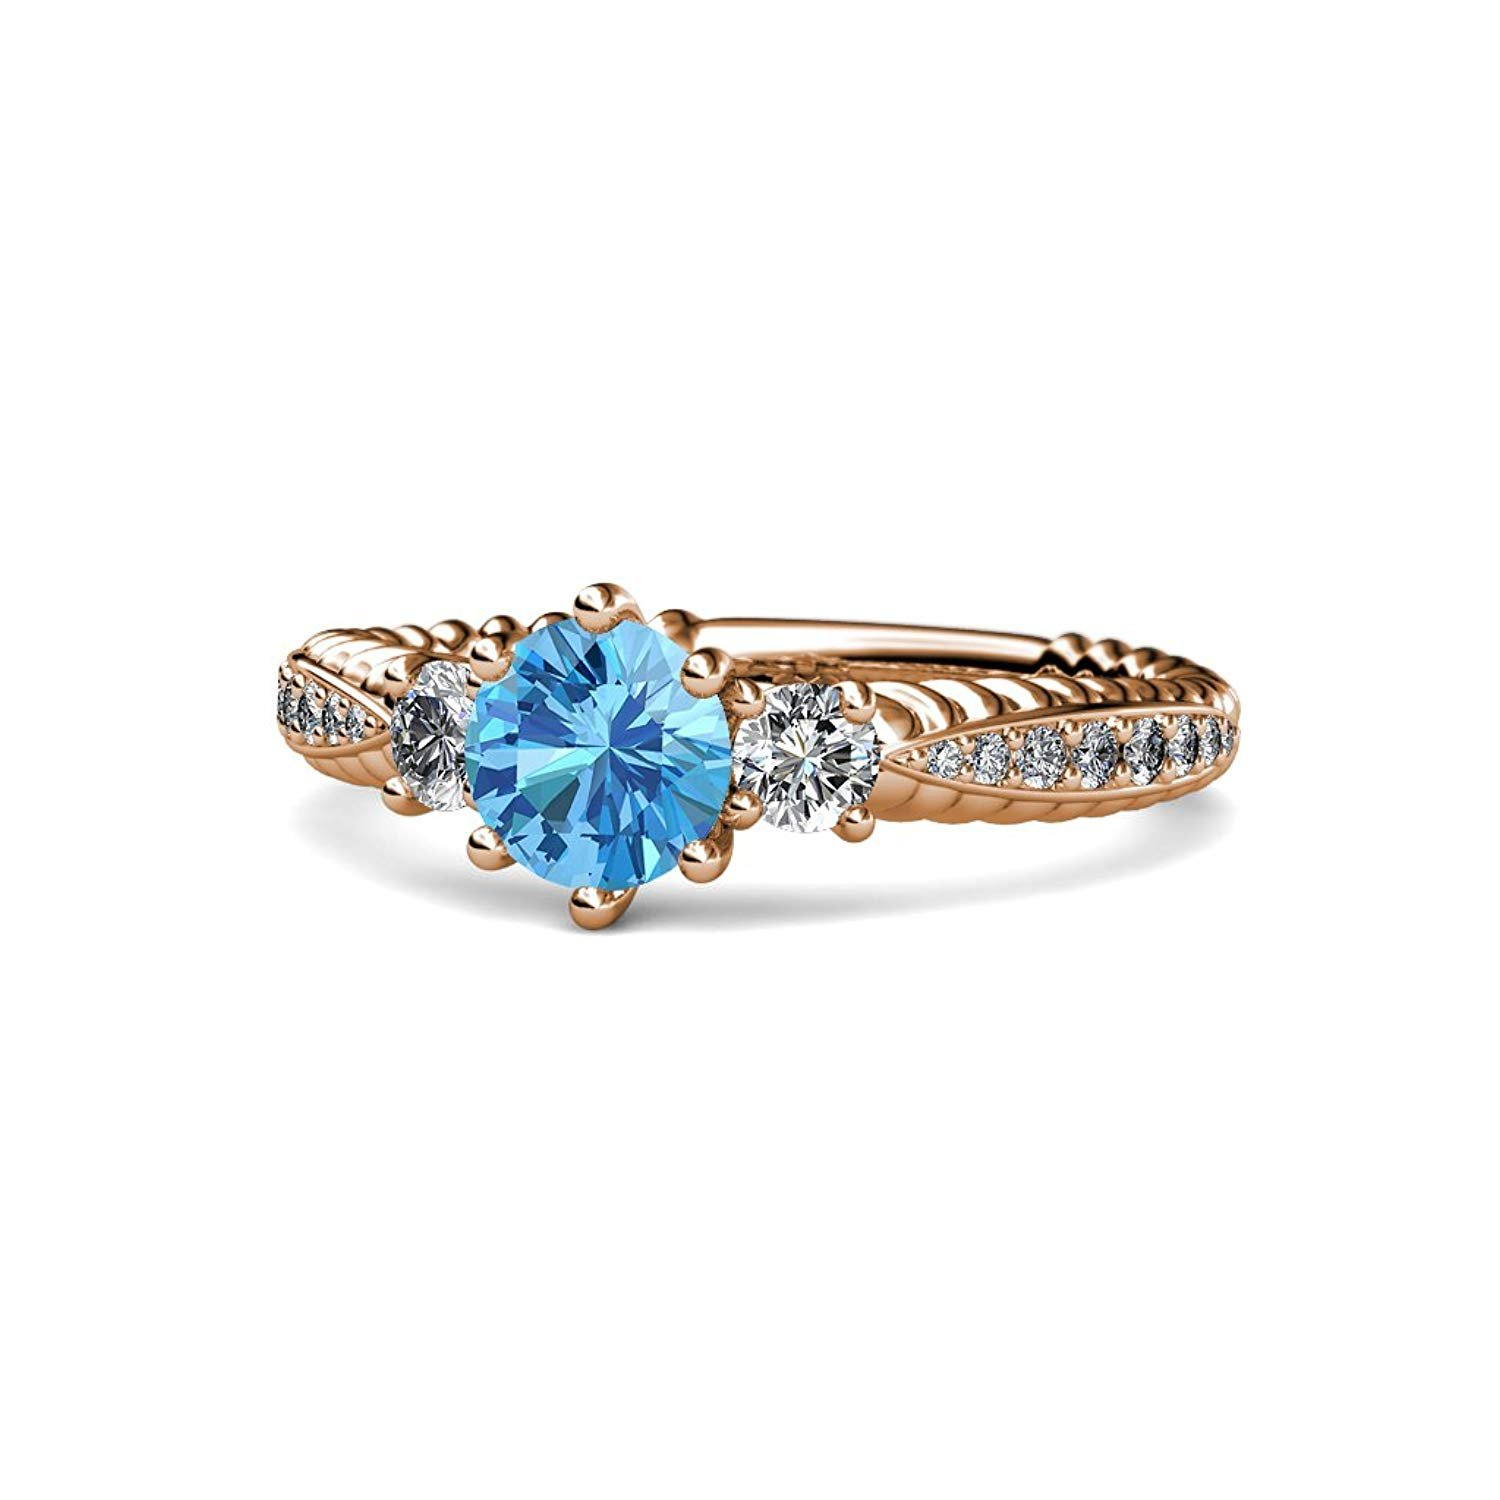 Blue Topaz and Diamond Three Stone Ring with Diamond on Side Bar 1.55 cttw 14K Rose Gold.size 5.5 by TriJewels